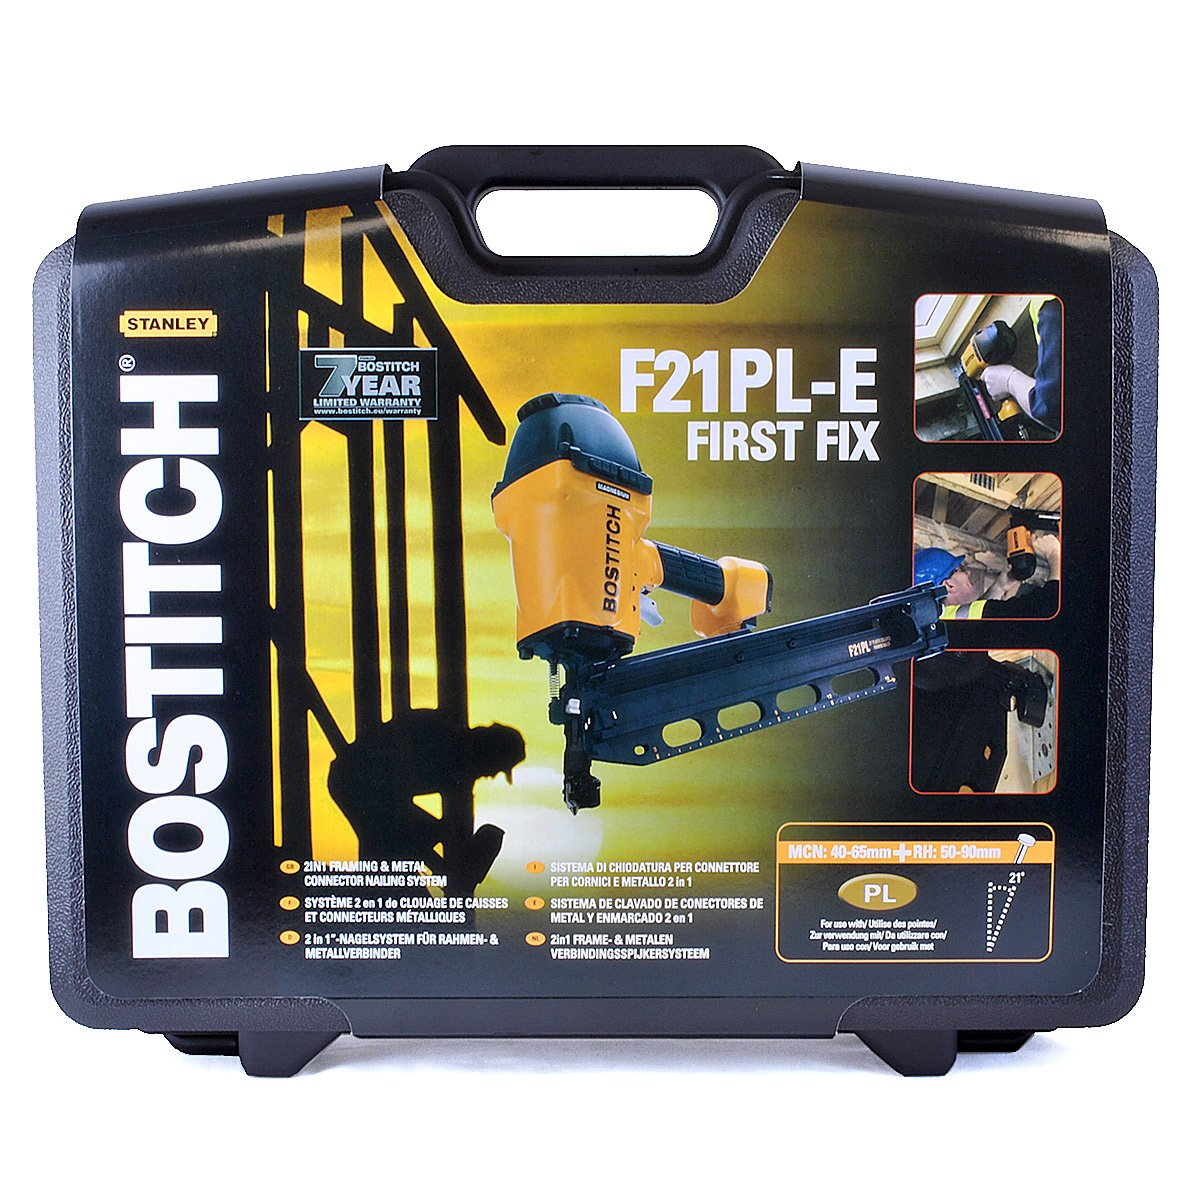 Bostitch F21PLE RH and MCN Stick Nailer with Case: Amazon.co.uk: DIY ...